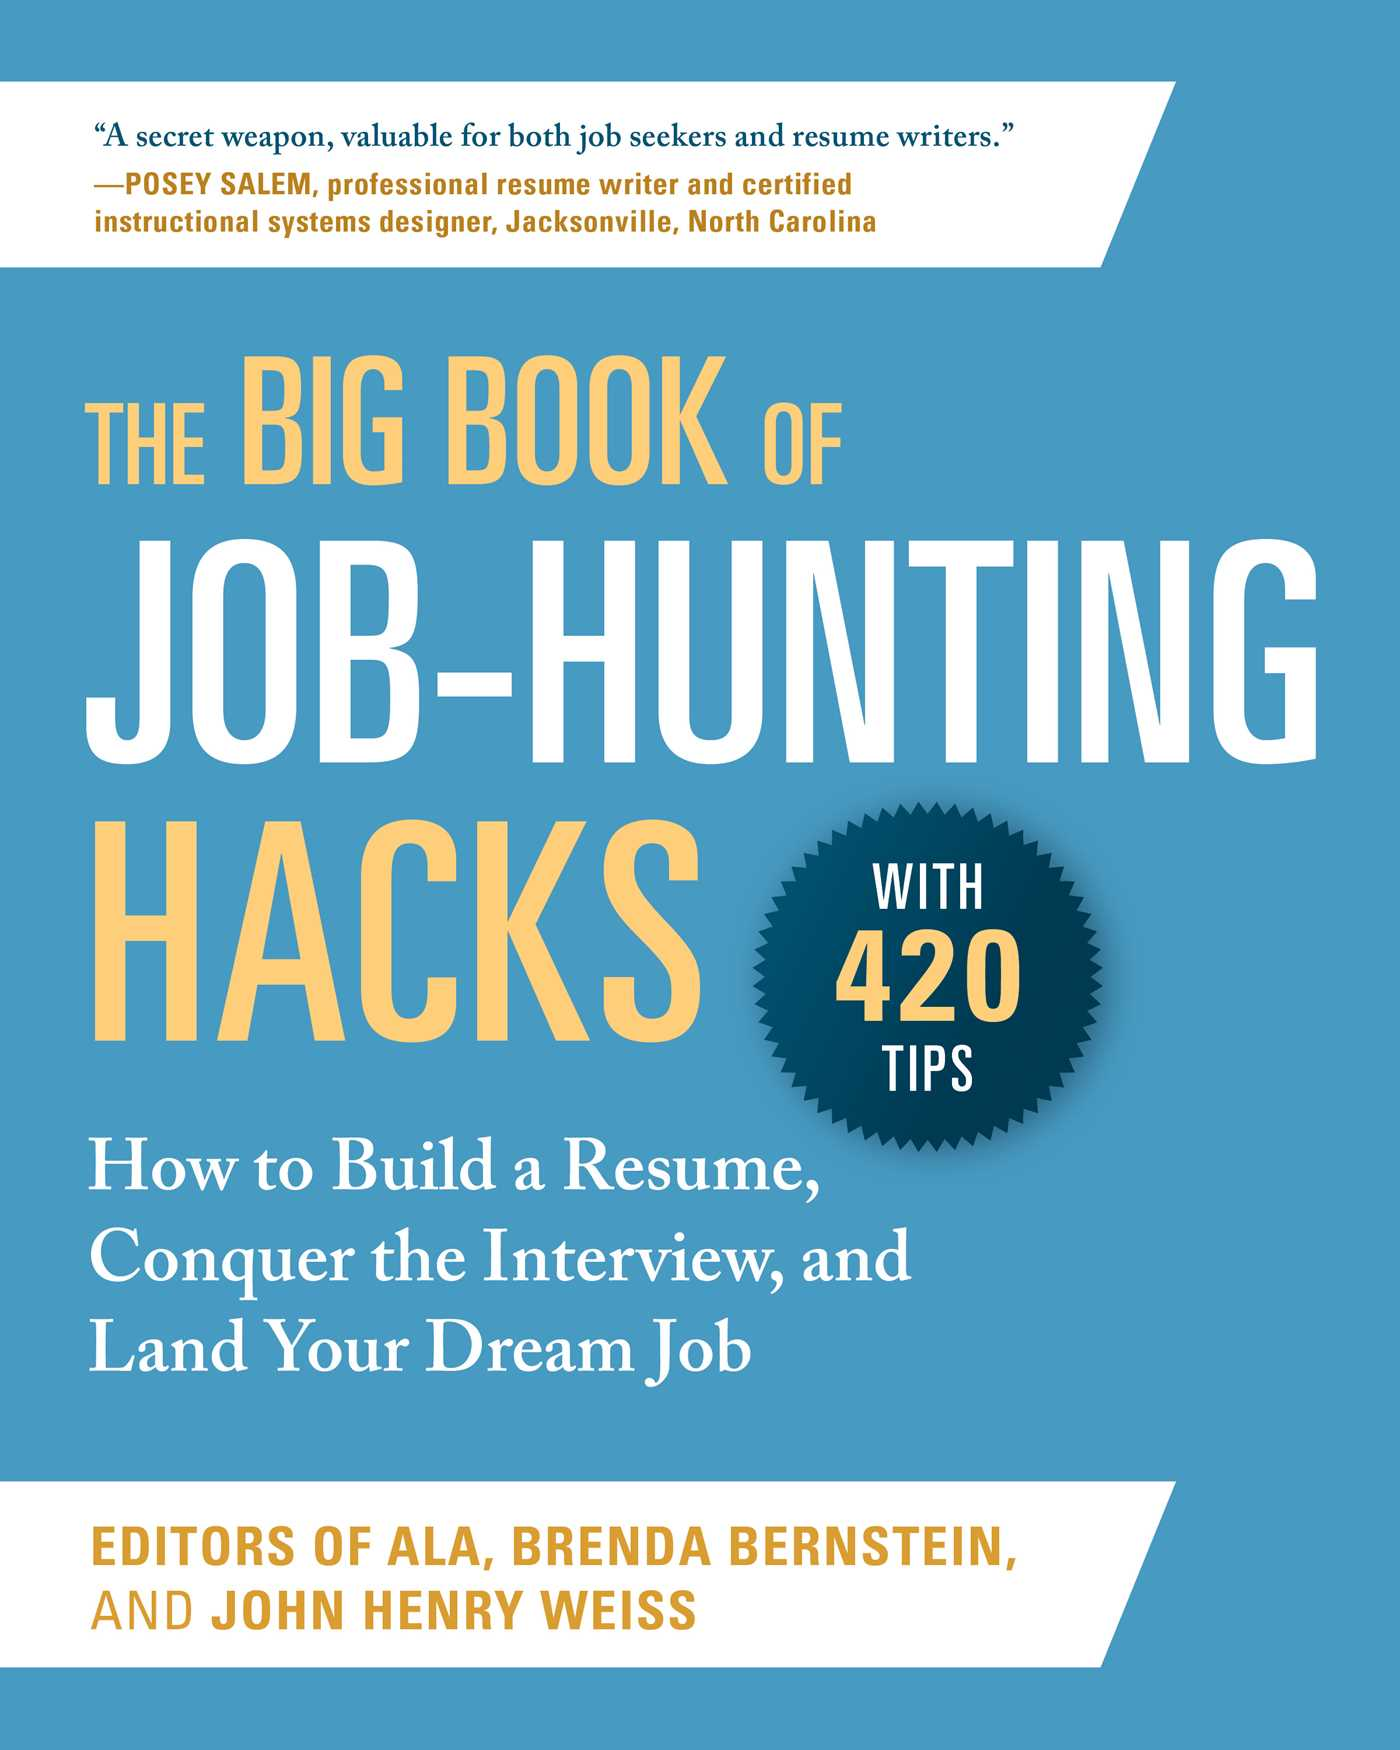 The Big Book of Job-Hunting Hacks How to Build a Résumé, Conquer the Interview, and Land Your Dream Job